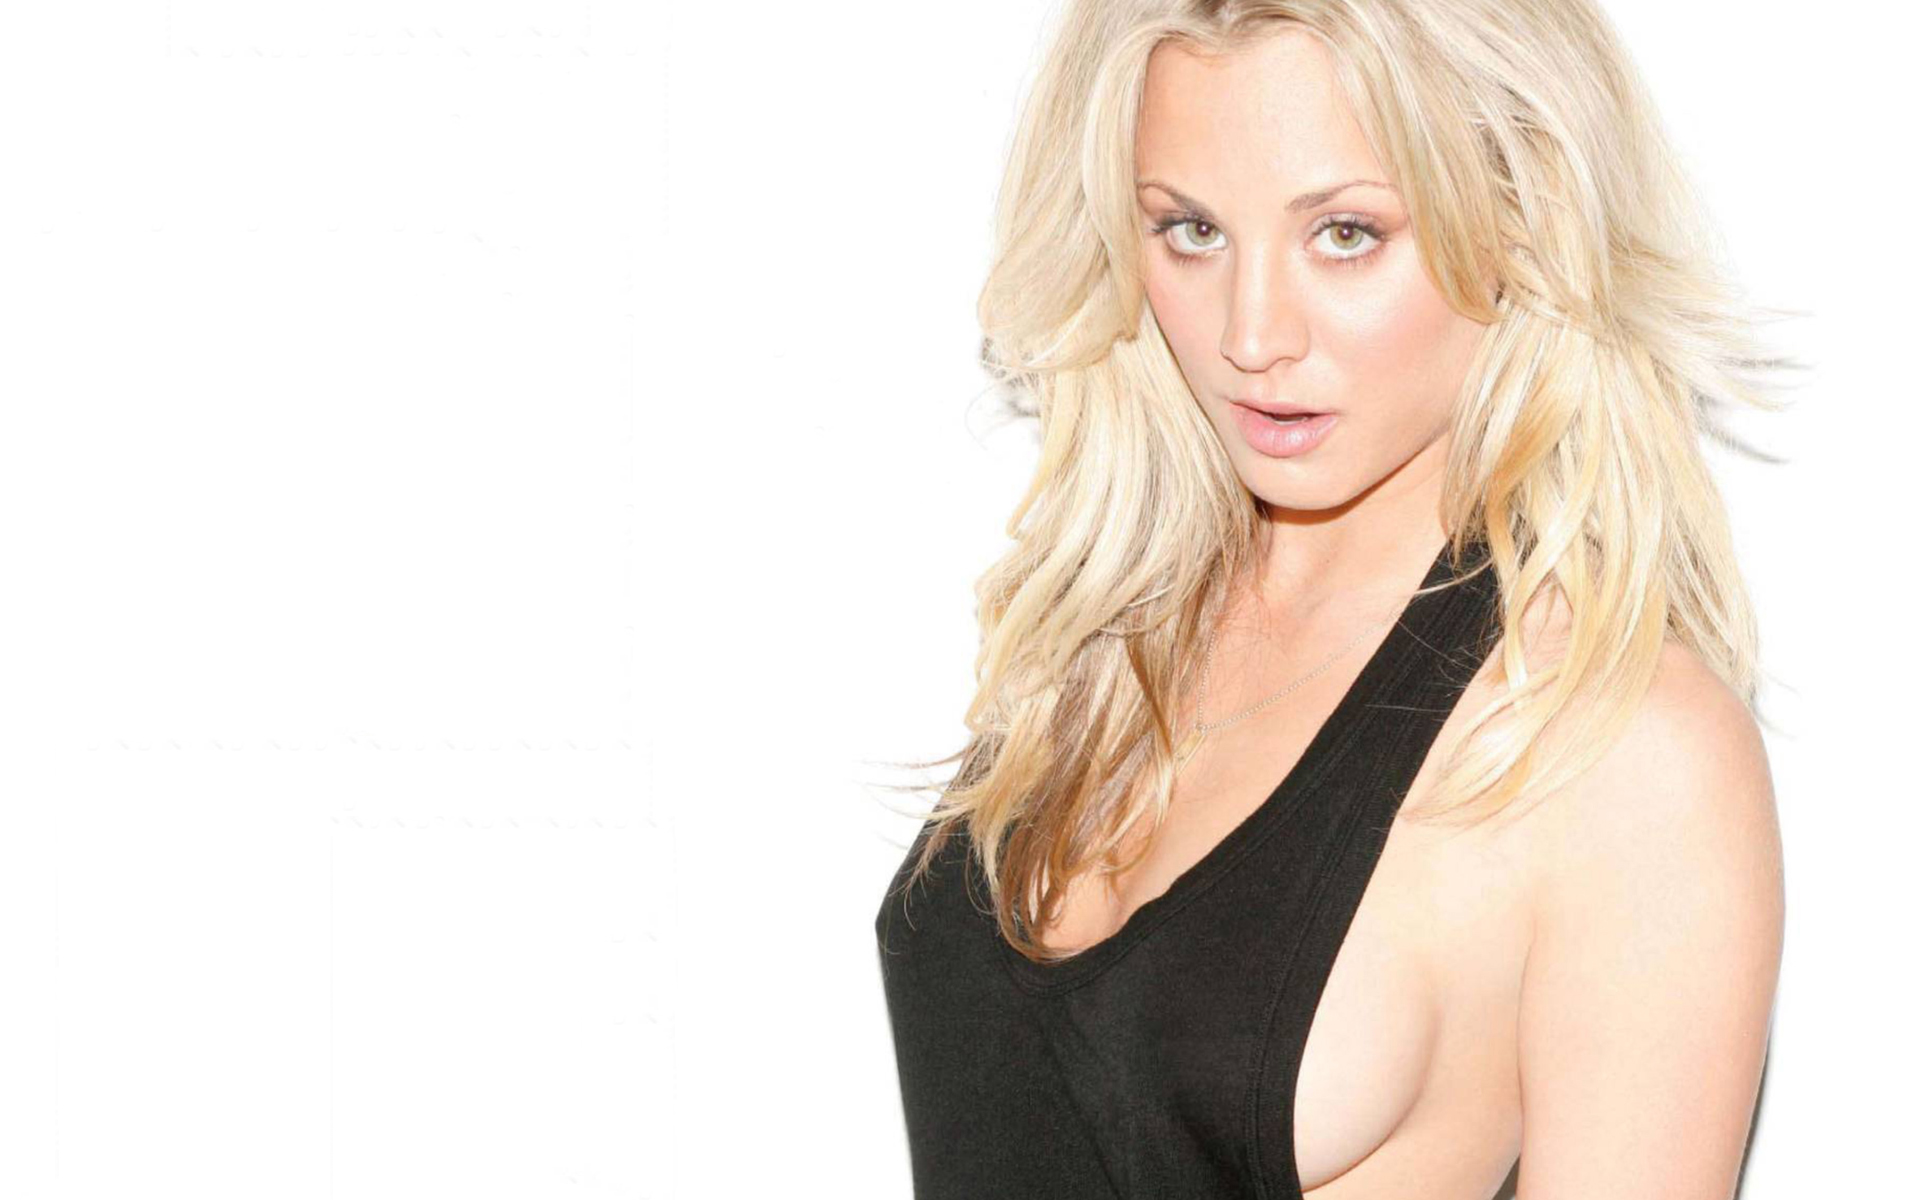 kaley cuoco wallpaper 1920x1200